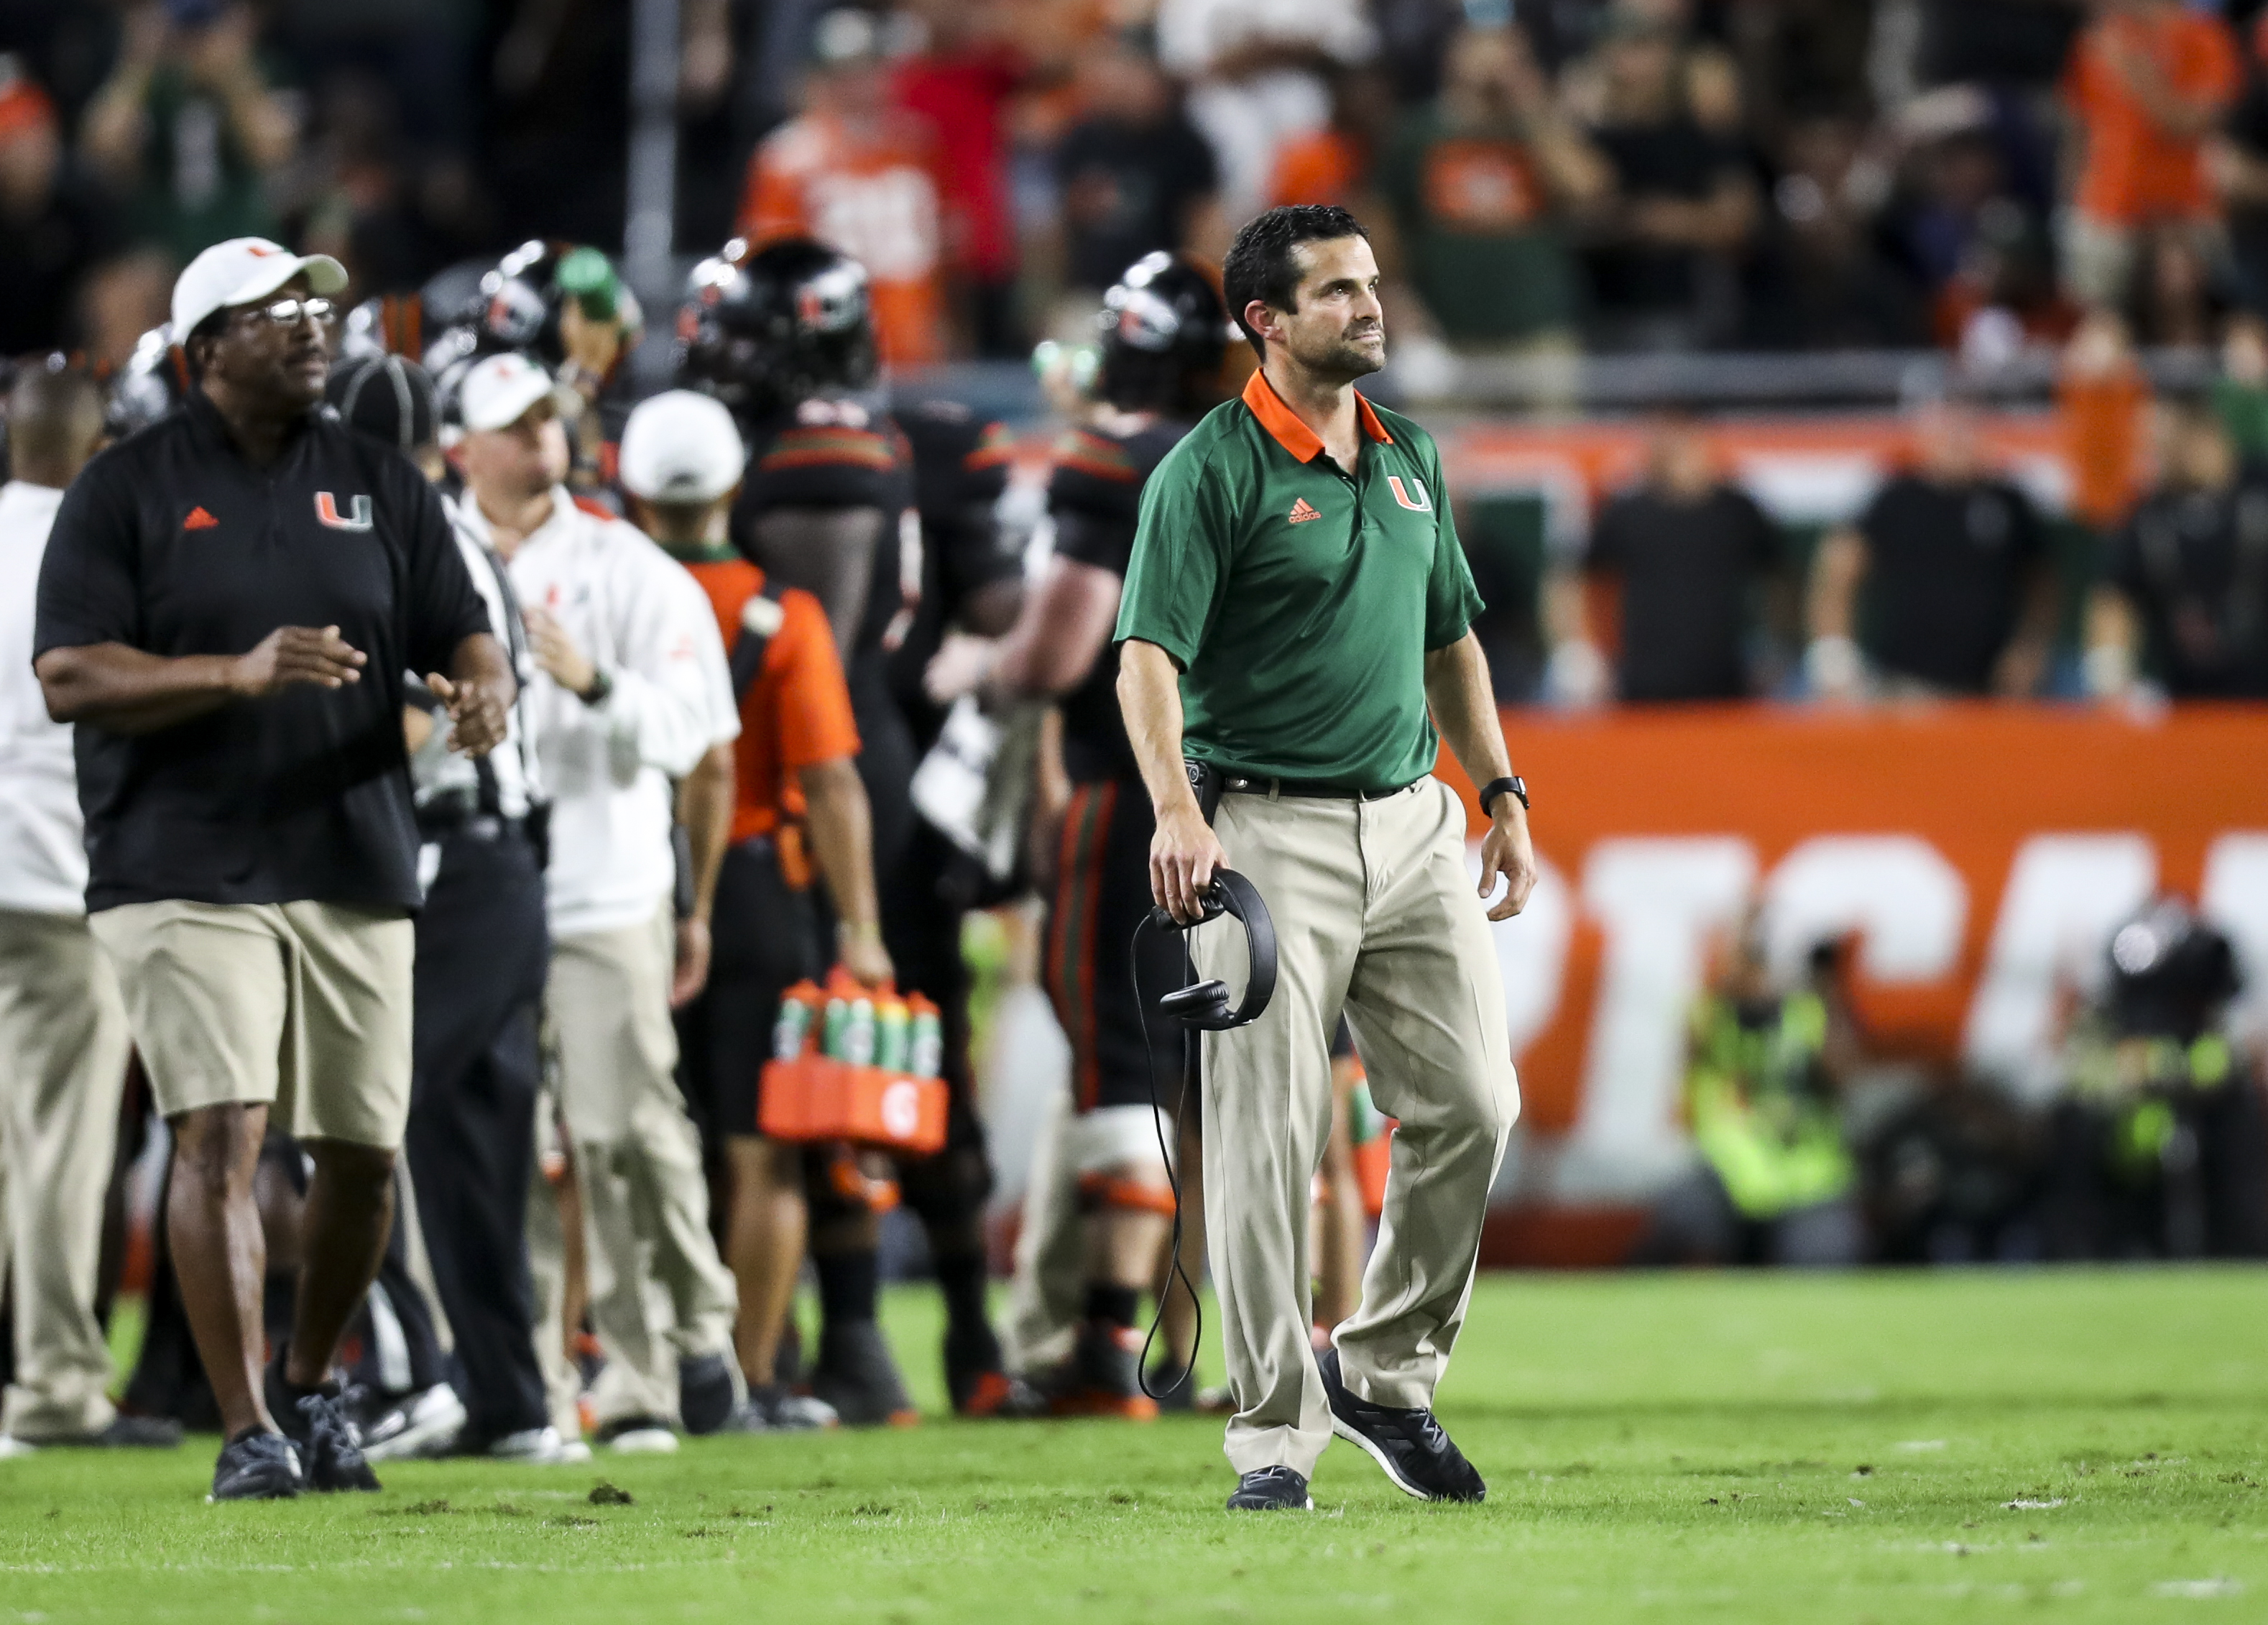 Florida Gators, Miami Hurricanes have the national focus. Now they must show they deserve it.